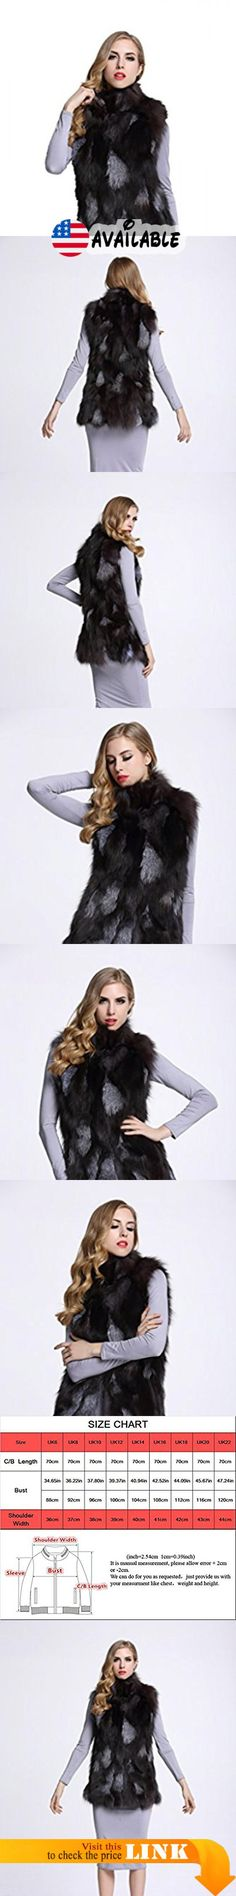 "B01KLKOZRC : TOPFUR Women's Real Fox Fur Vest Full Pelt Fur Gilet Waistcoat(XL). Made from high quality Genuine silver fox fur external with soft and elastic Polyester Lining which feels cozy on the skin and comfortable to wear. Available sizes of stylish fur outerwear excellently Fit well with your demand. Length:27.6""(70cm). Elegant stand collar with handsome hook design look stereoscopic and gorgeous as the cool model when wearing this practical and fashion fur coat"